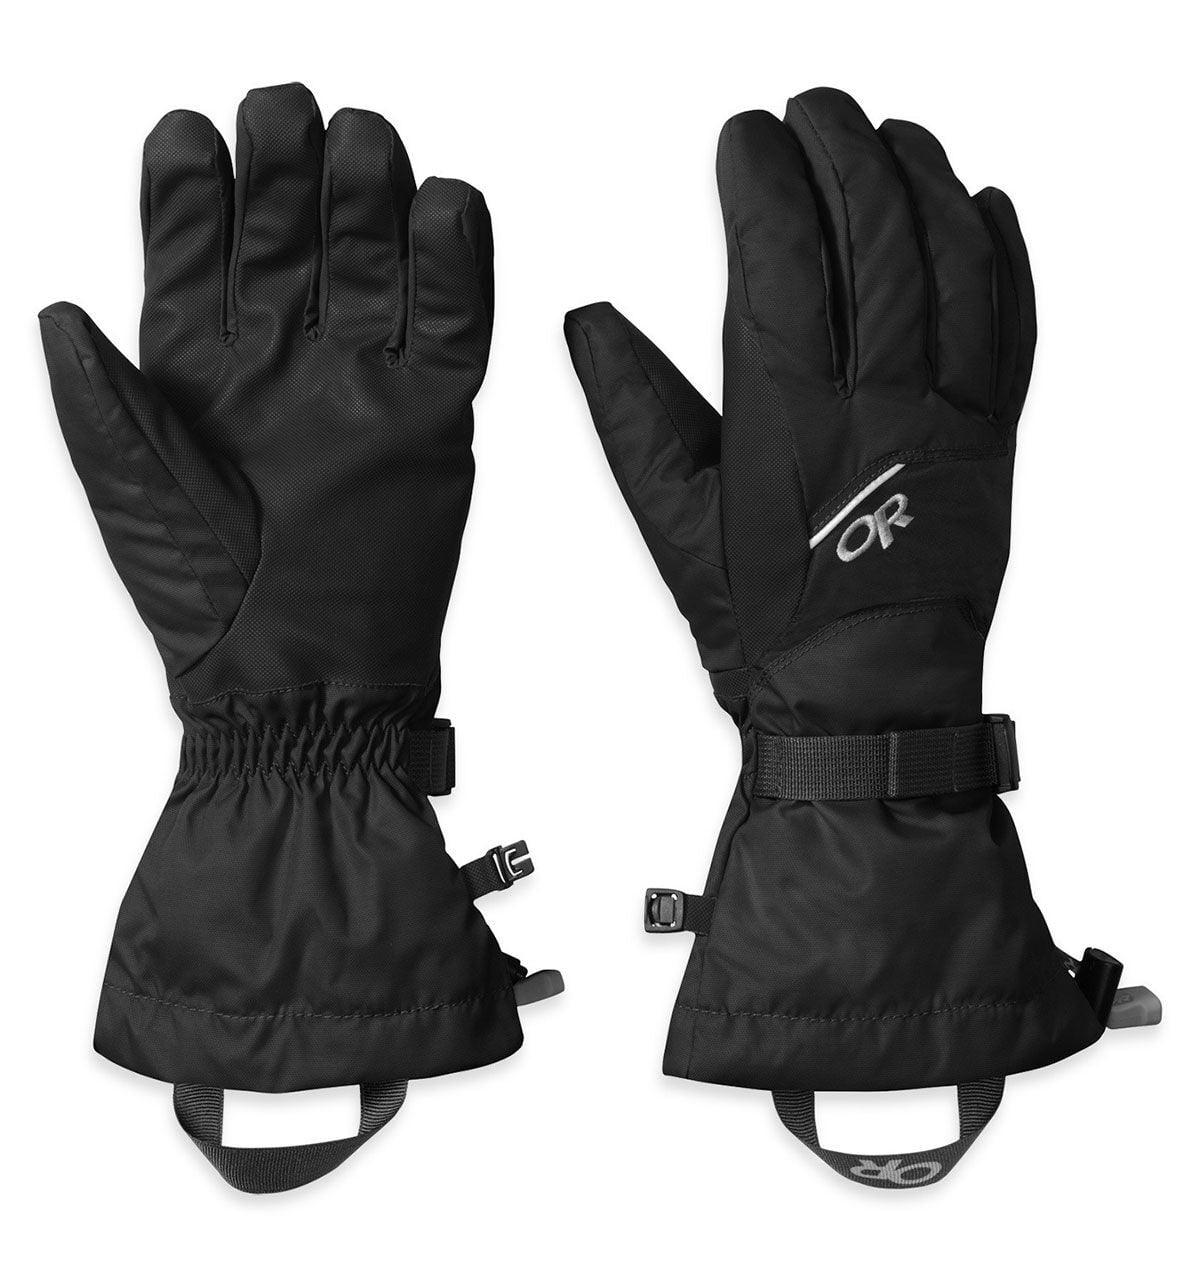 a pair of adrenaline gloves in black from outdoor research